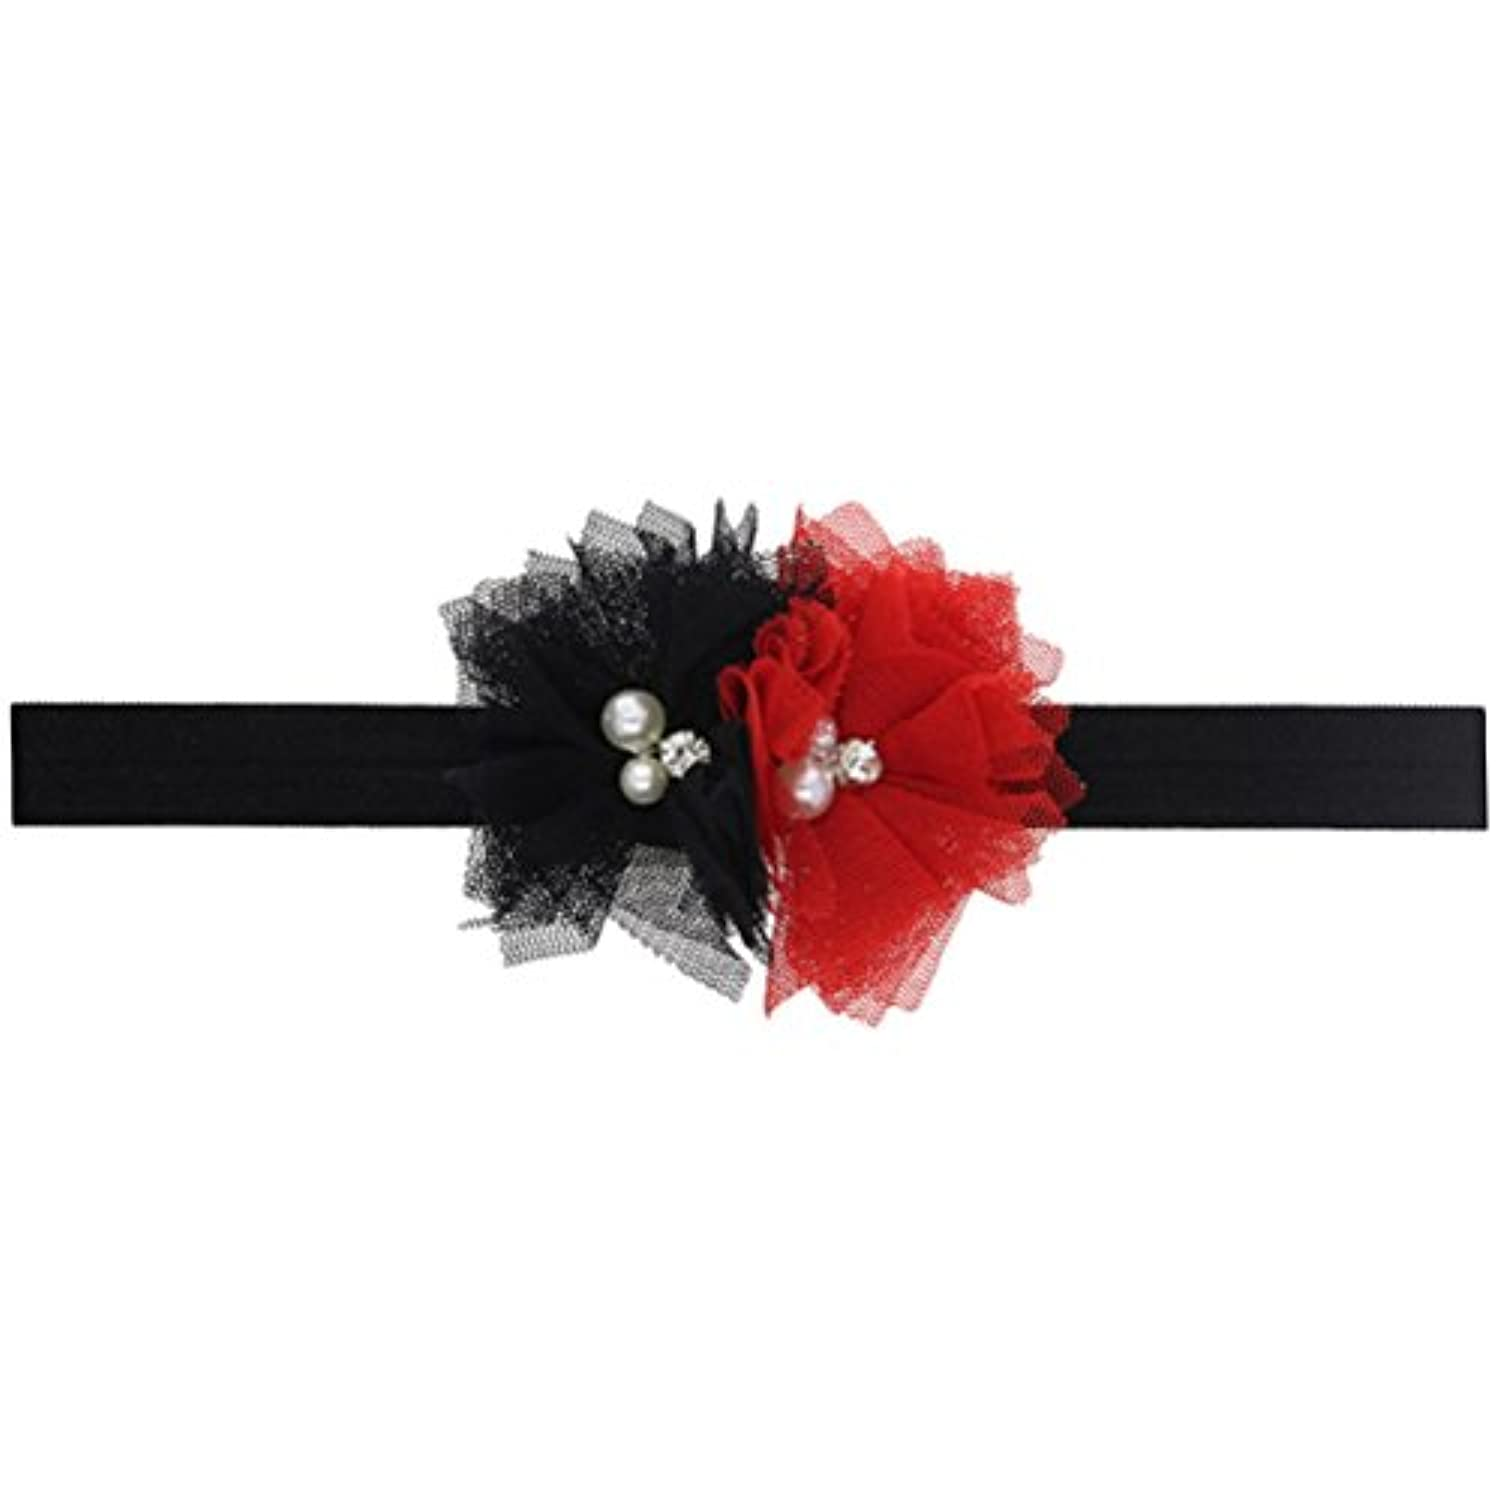 Zhhlaixing ベビー小物 Kids Baby Girls Soft Elastic Flowers Headband Hairband Hair Accessories for Christmas 5124